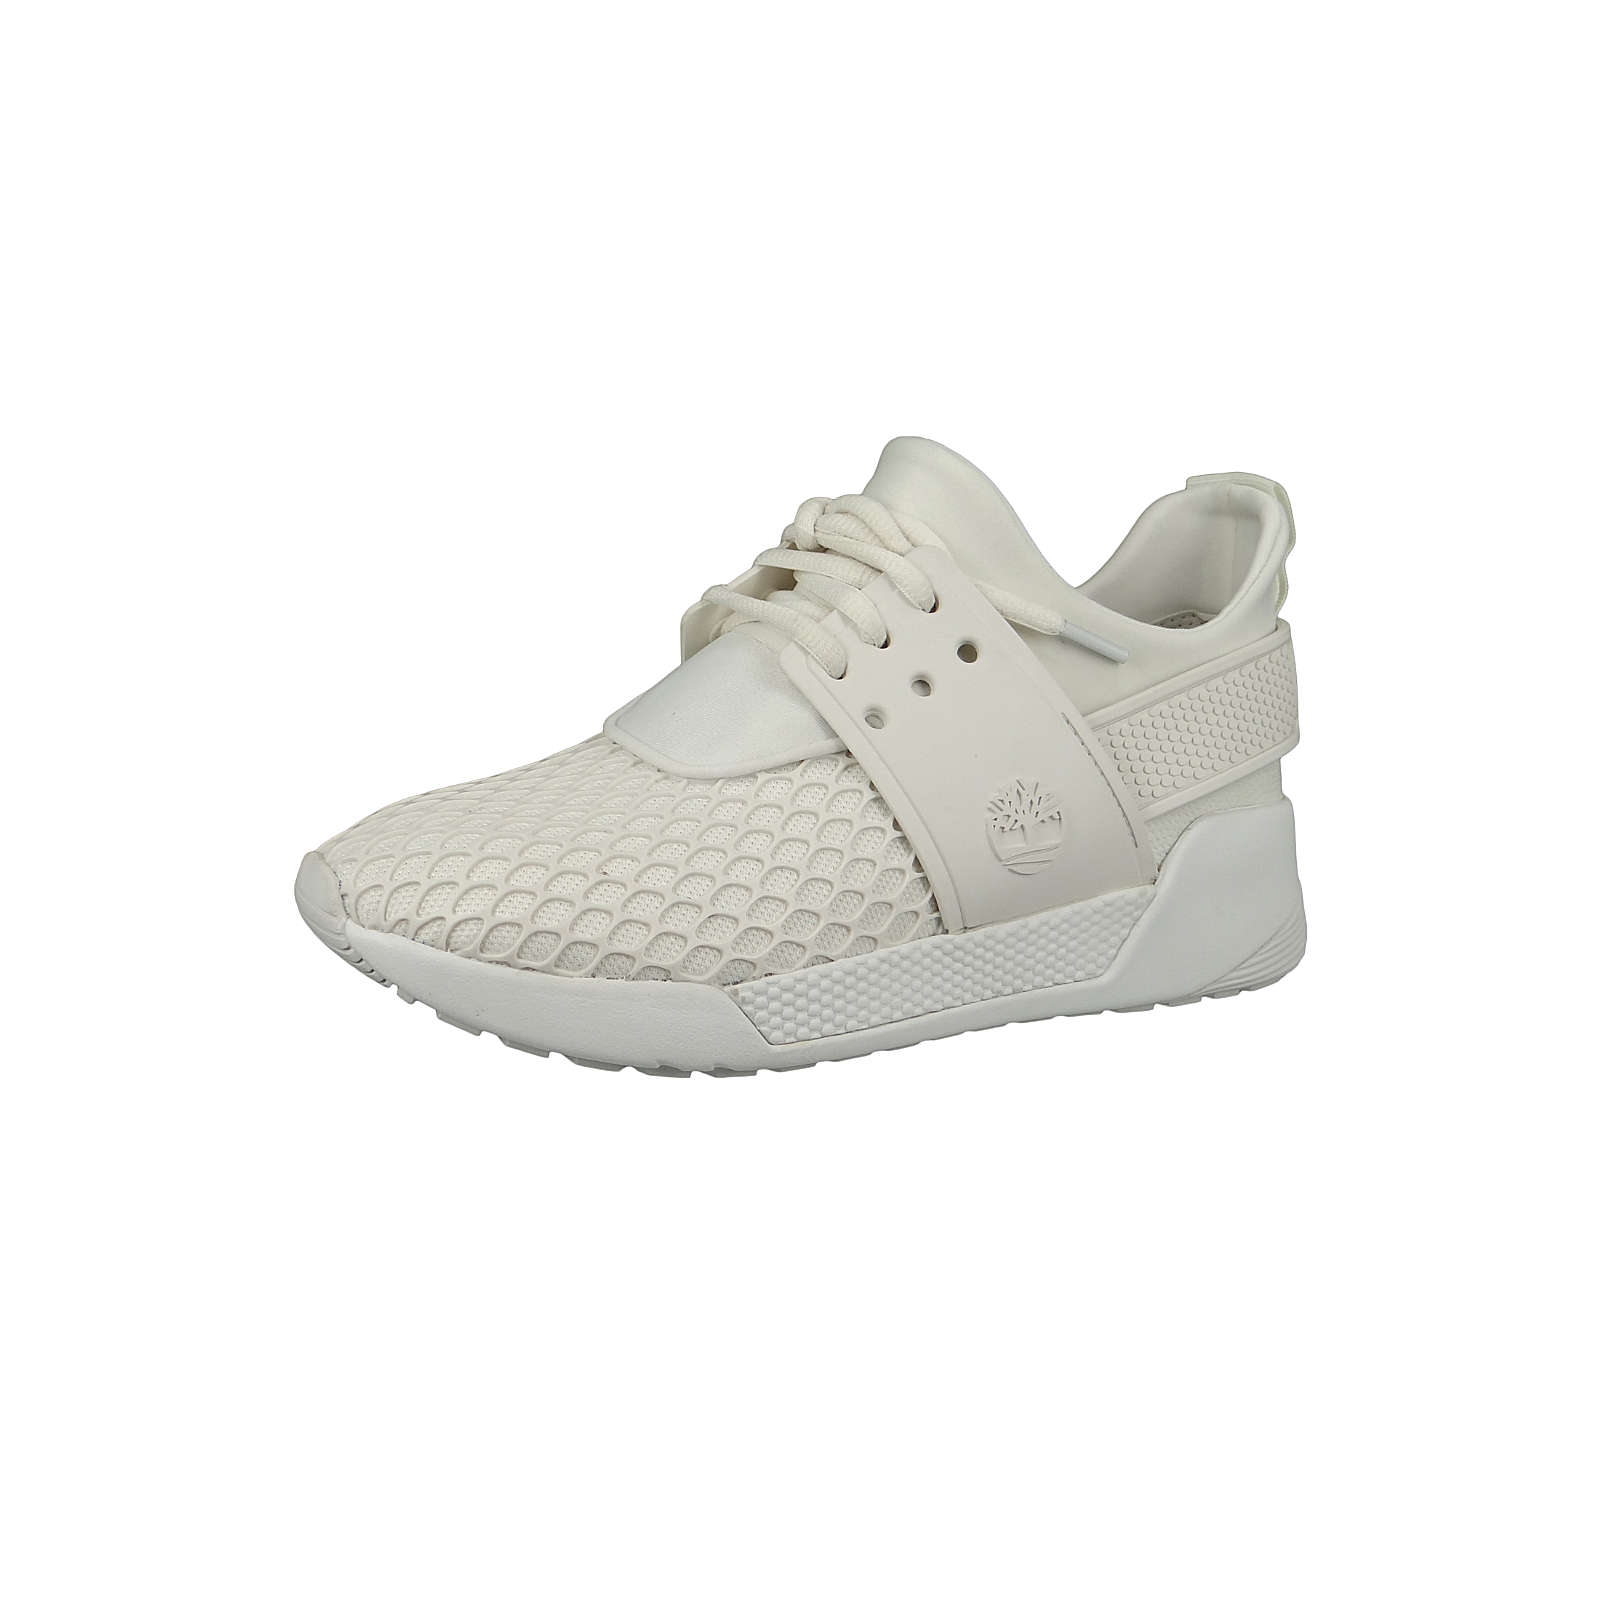 Timberland A1Y5C Kiri Up KPU Net Oxford Damen Schnürschuhe Sneaker White Weiss Sneakers Low weiß Damen Gr. 36